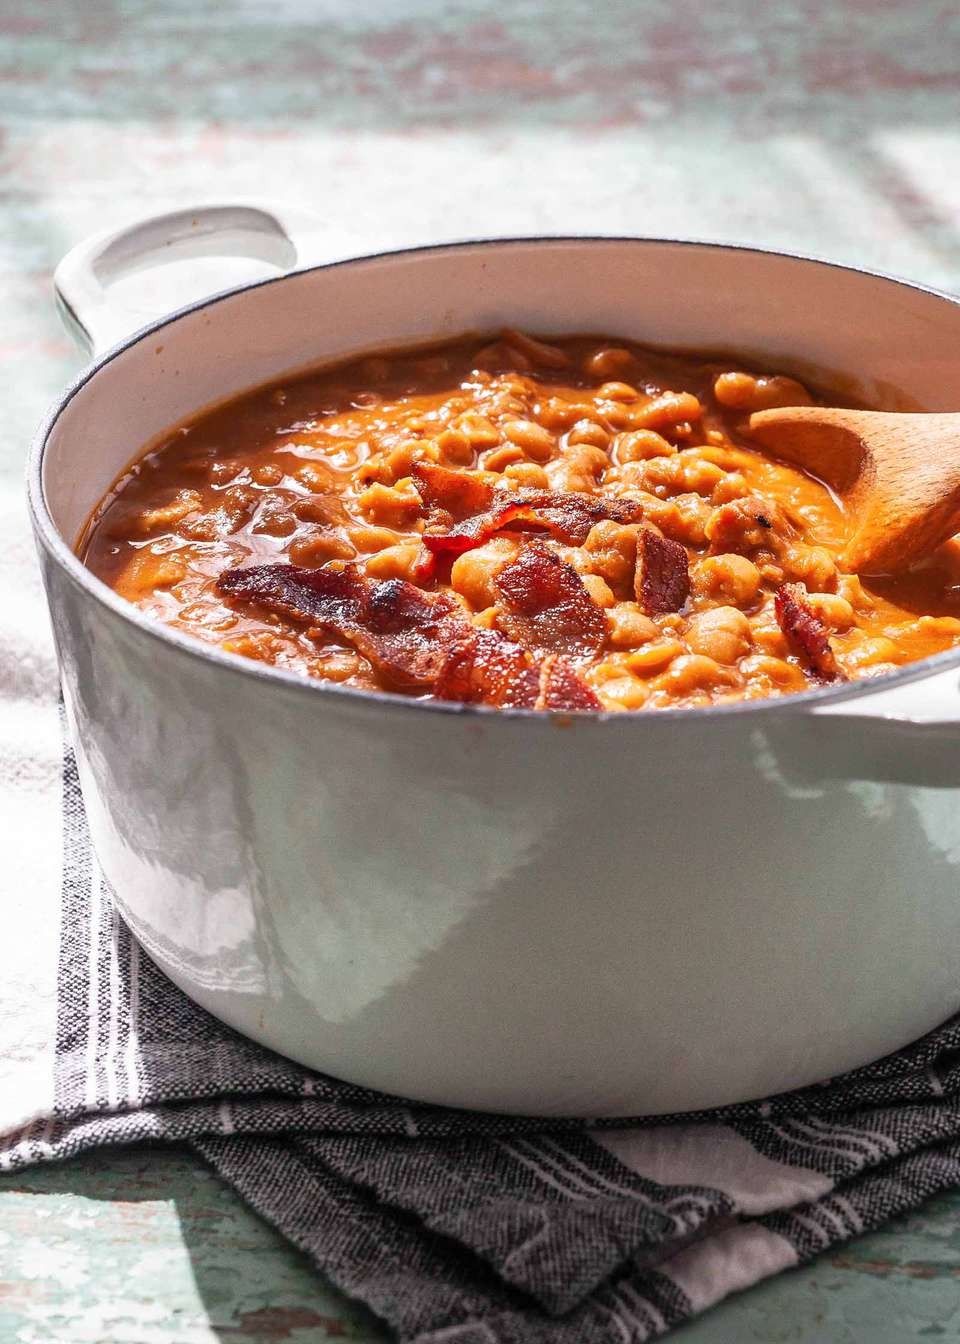 Baked Beans on the Stovetop - baked beans in a pot with a wooden spoon